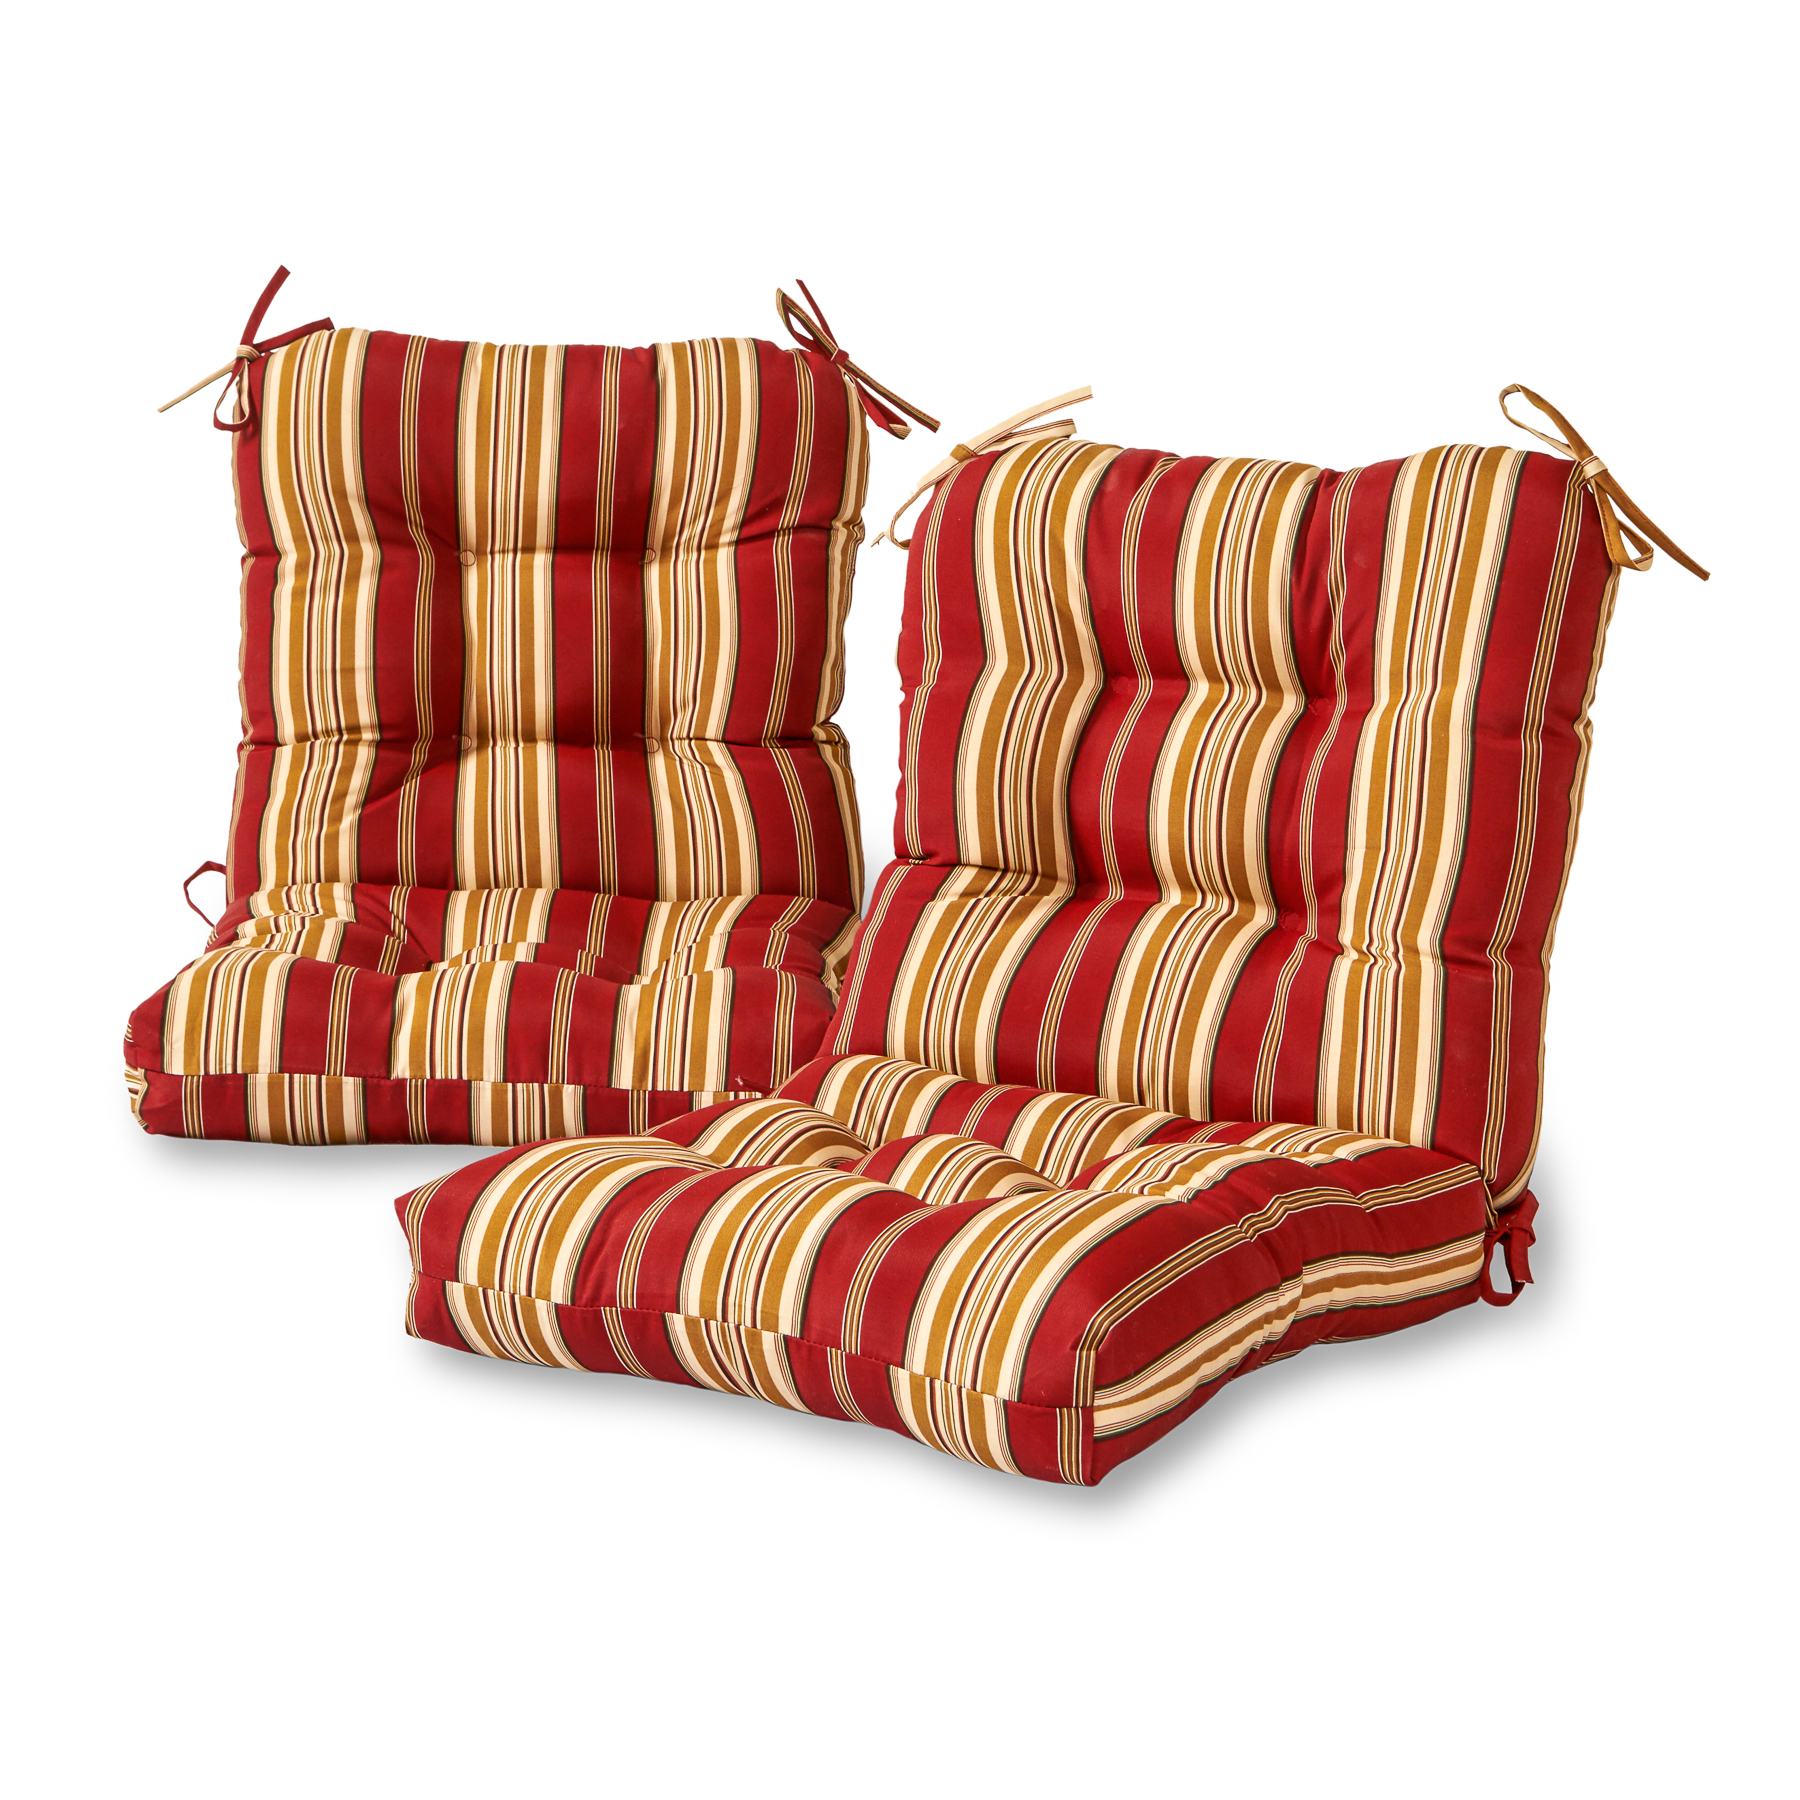 Greendale Home Fashions Roma Stripe Outdoor Chair Cushion, Set of 2